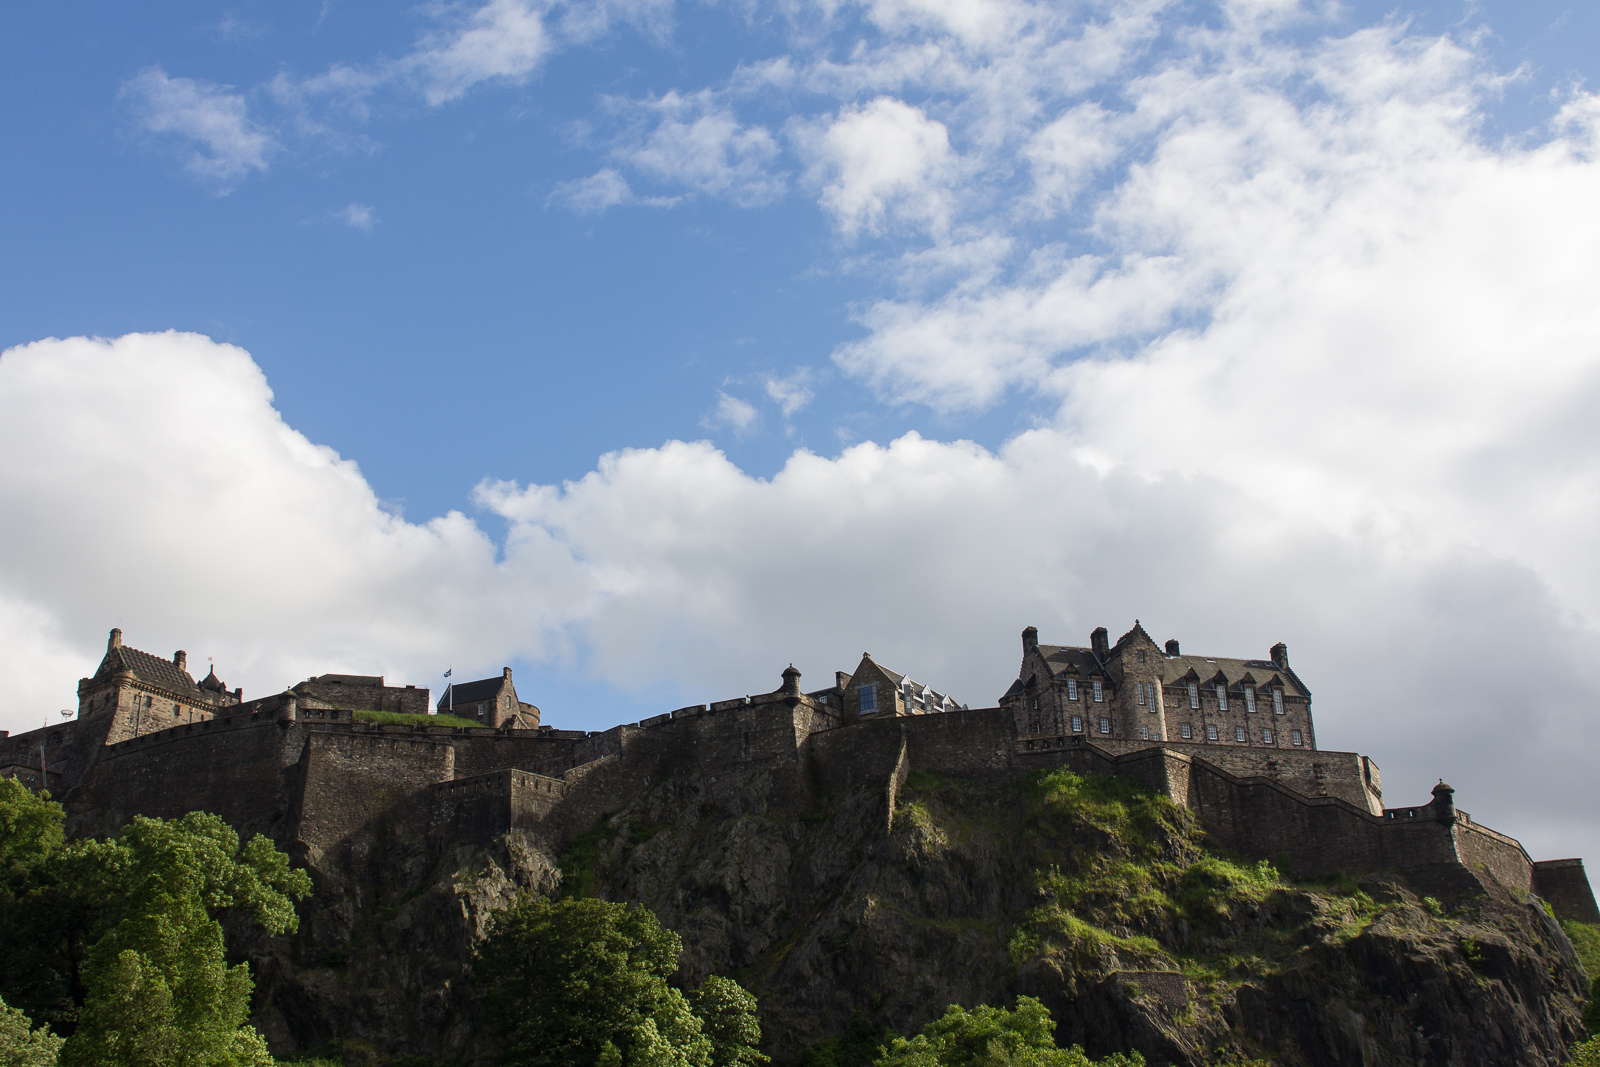 Edinburgh Castle as seen from Princes Gardens